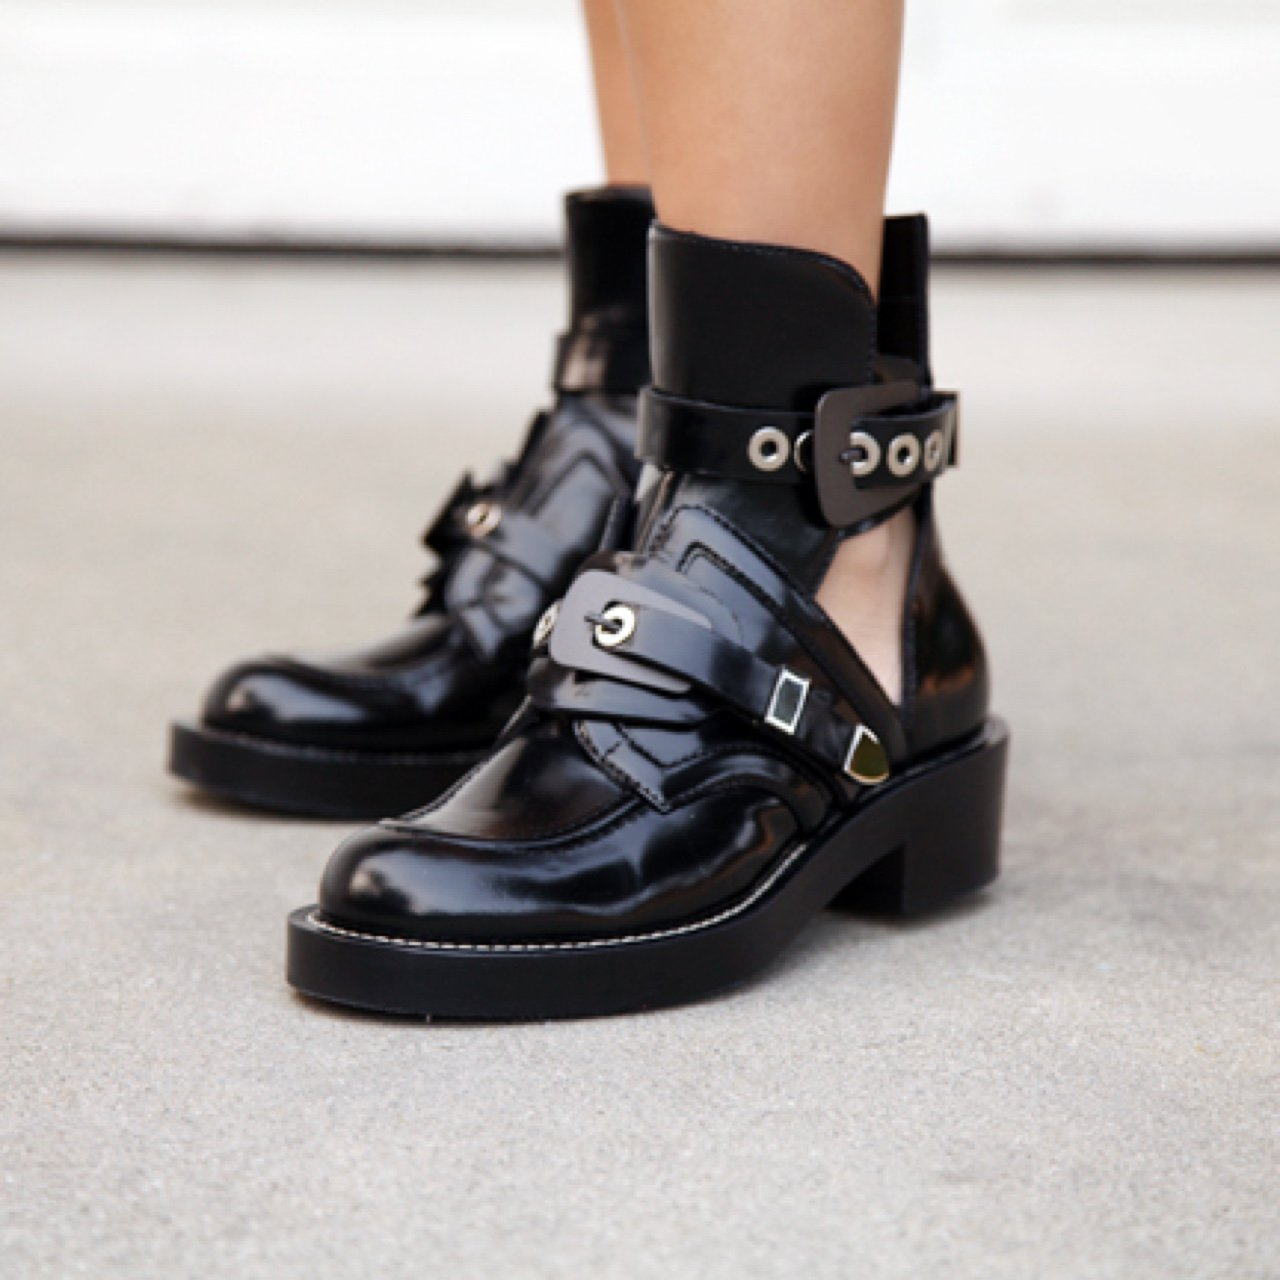 balenciaga boots cut out